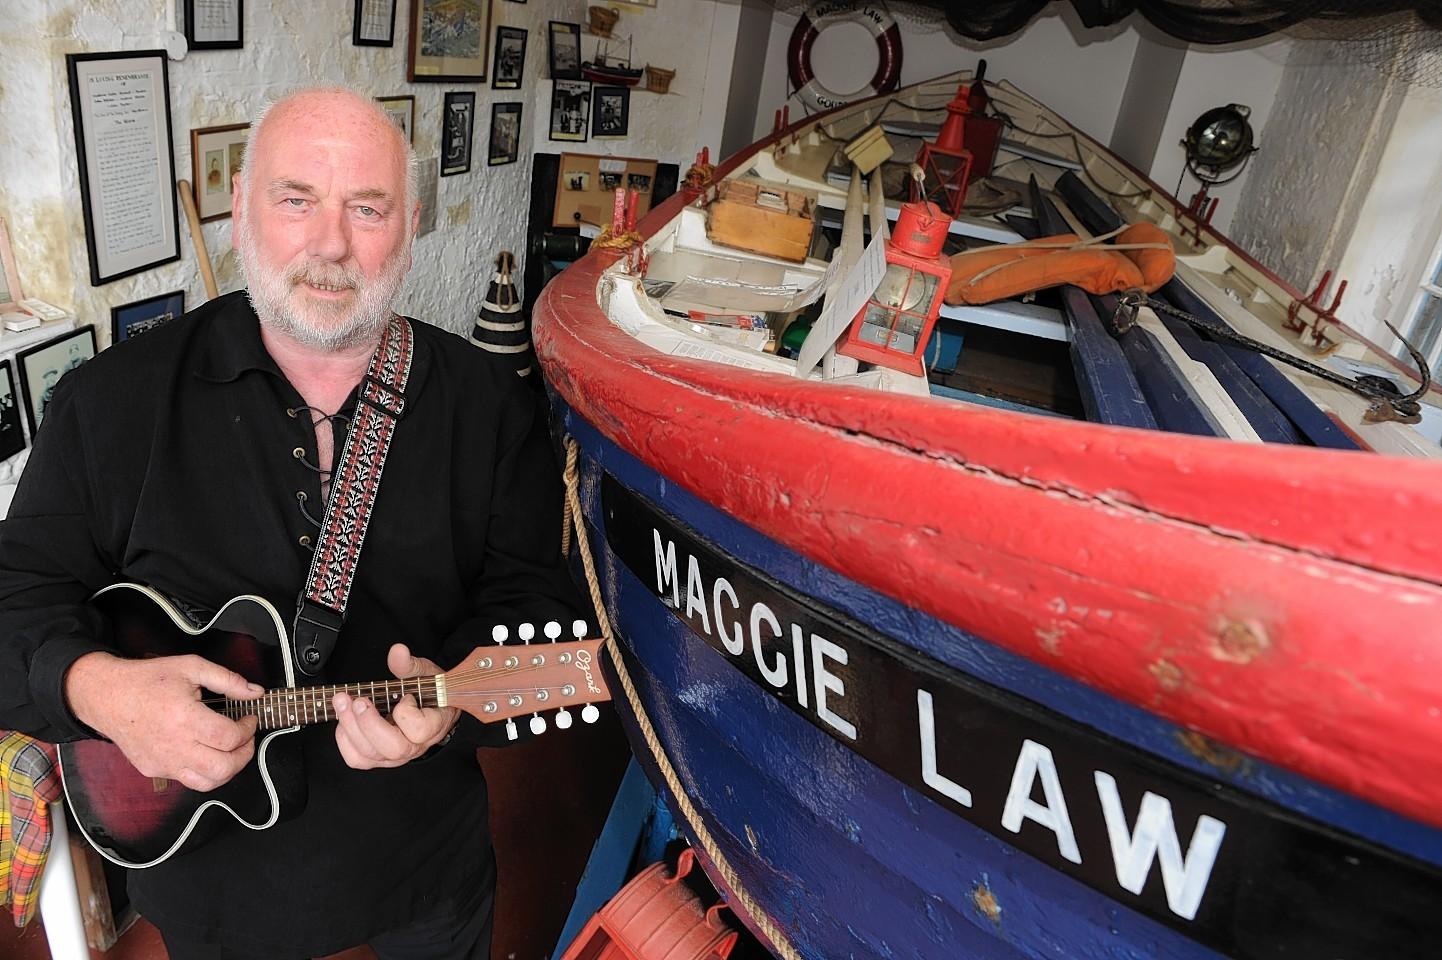 Dave Ramsay of the Maggie Law Maritime Museum